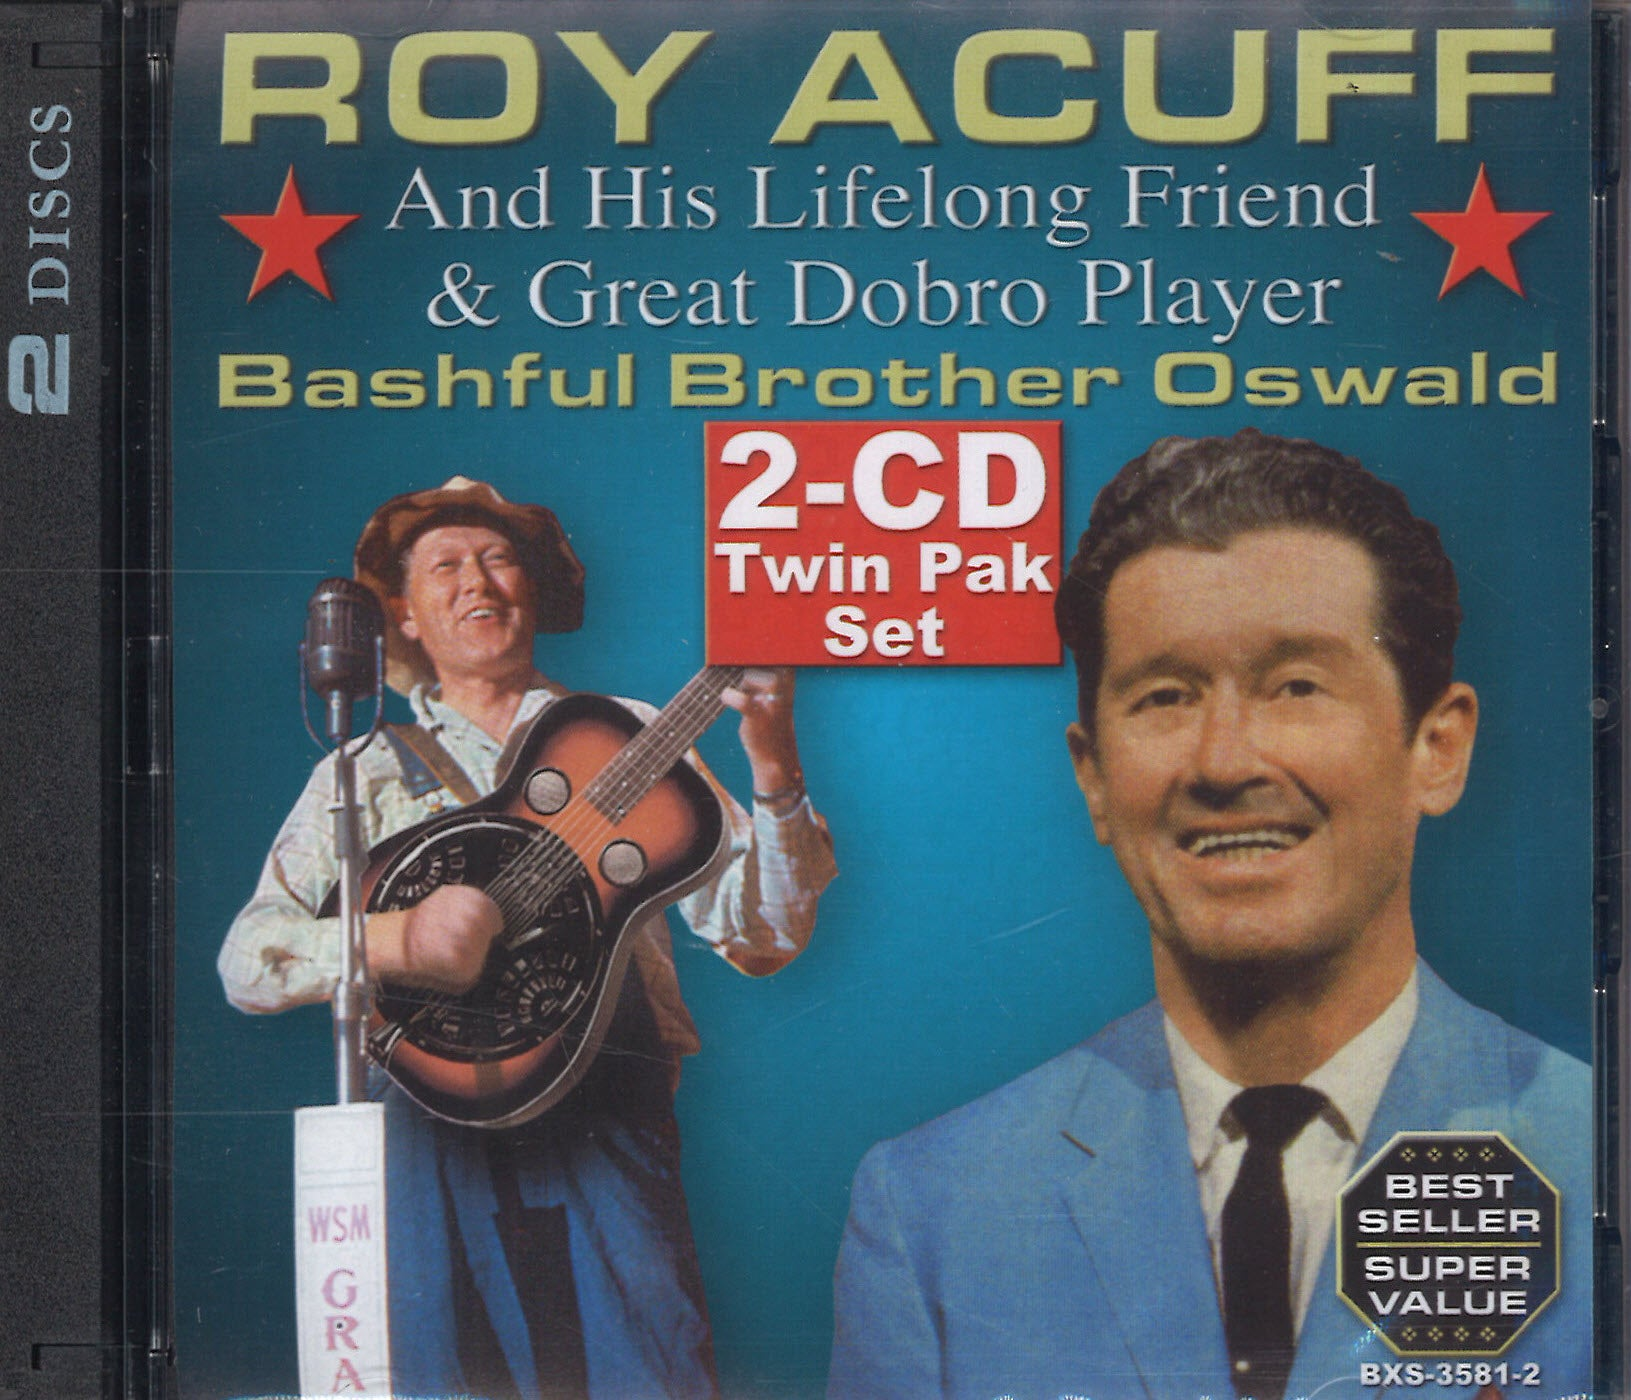 Roy Acuff & Bashful Brother Oswald Twin Pak: 2 CD Set